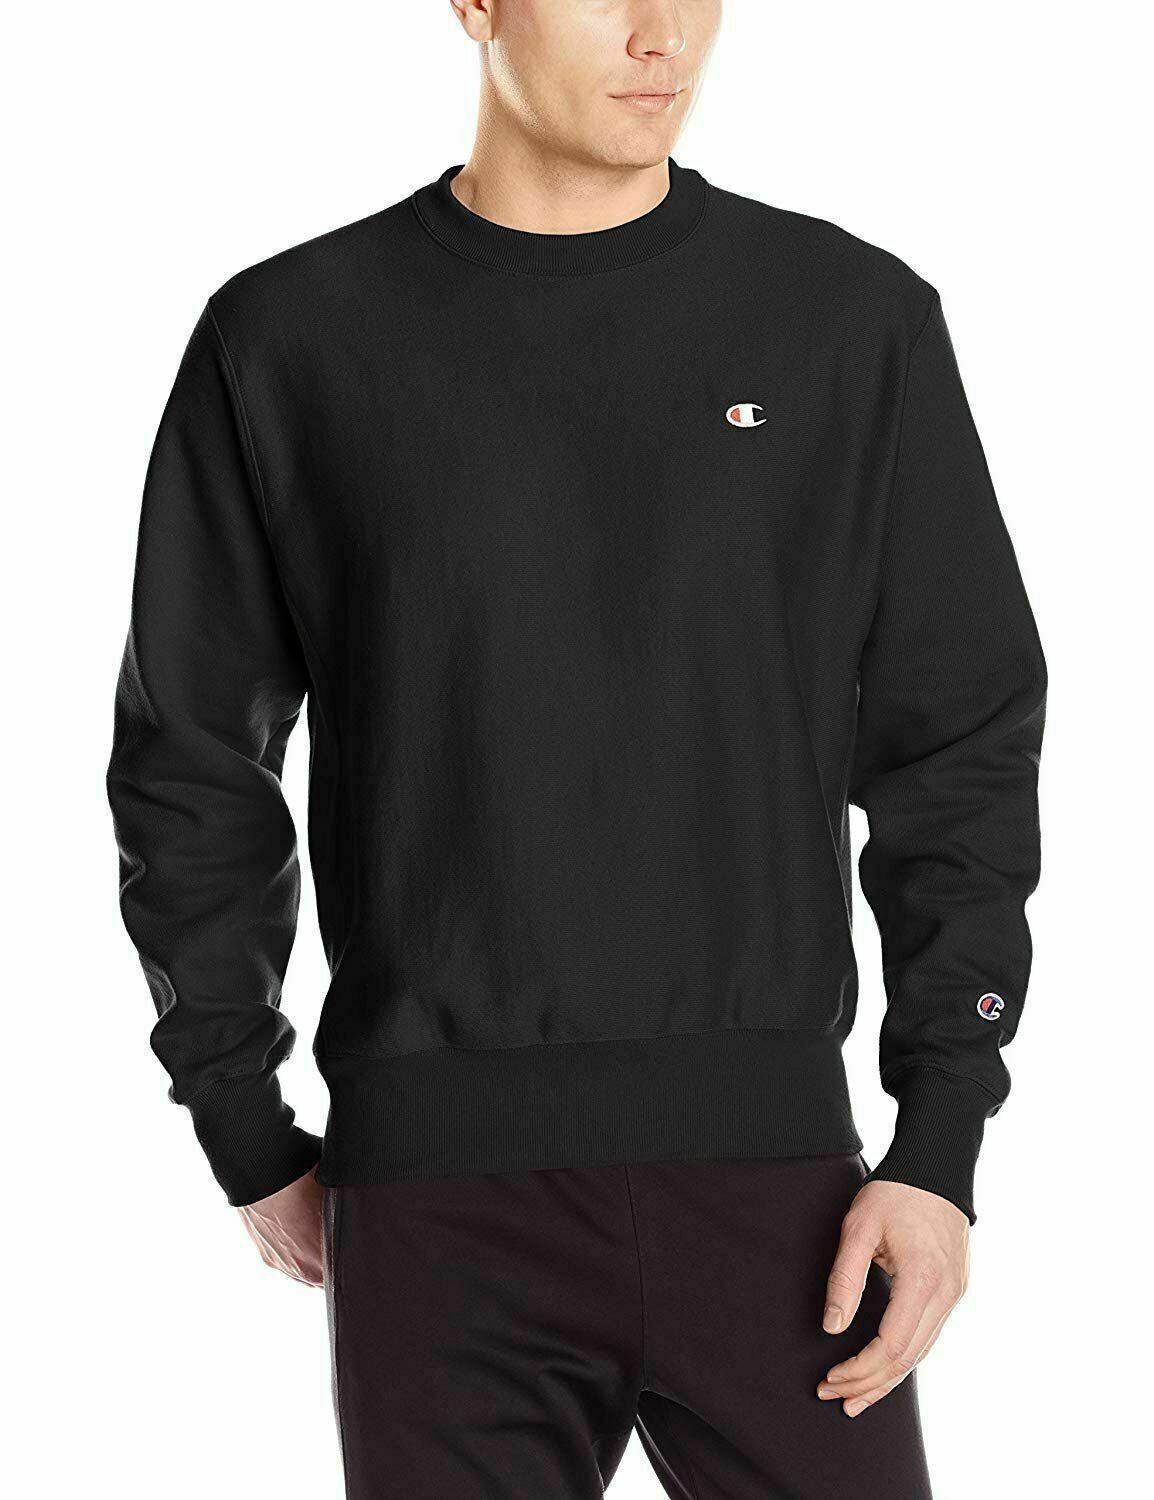 Champion Life Reverse Weave Sweatshirt Black Men's Medium Crew Neck Long Sleeve